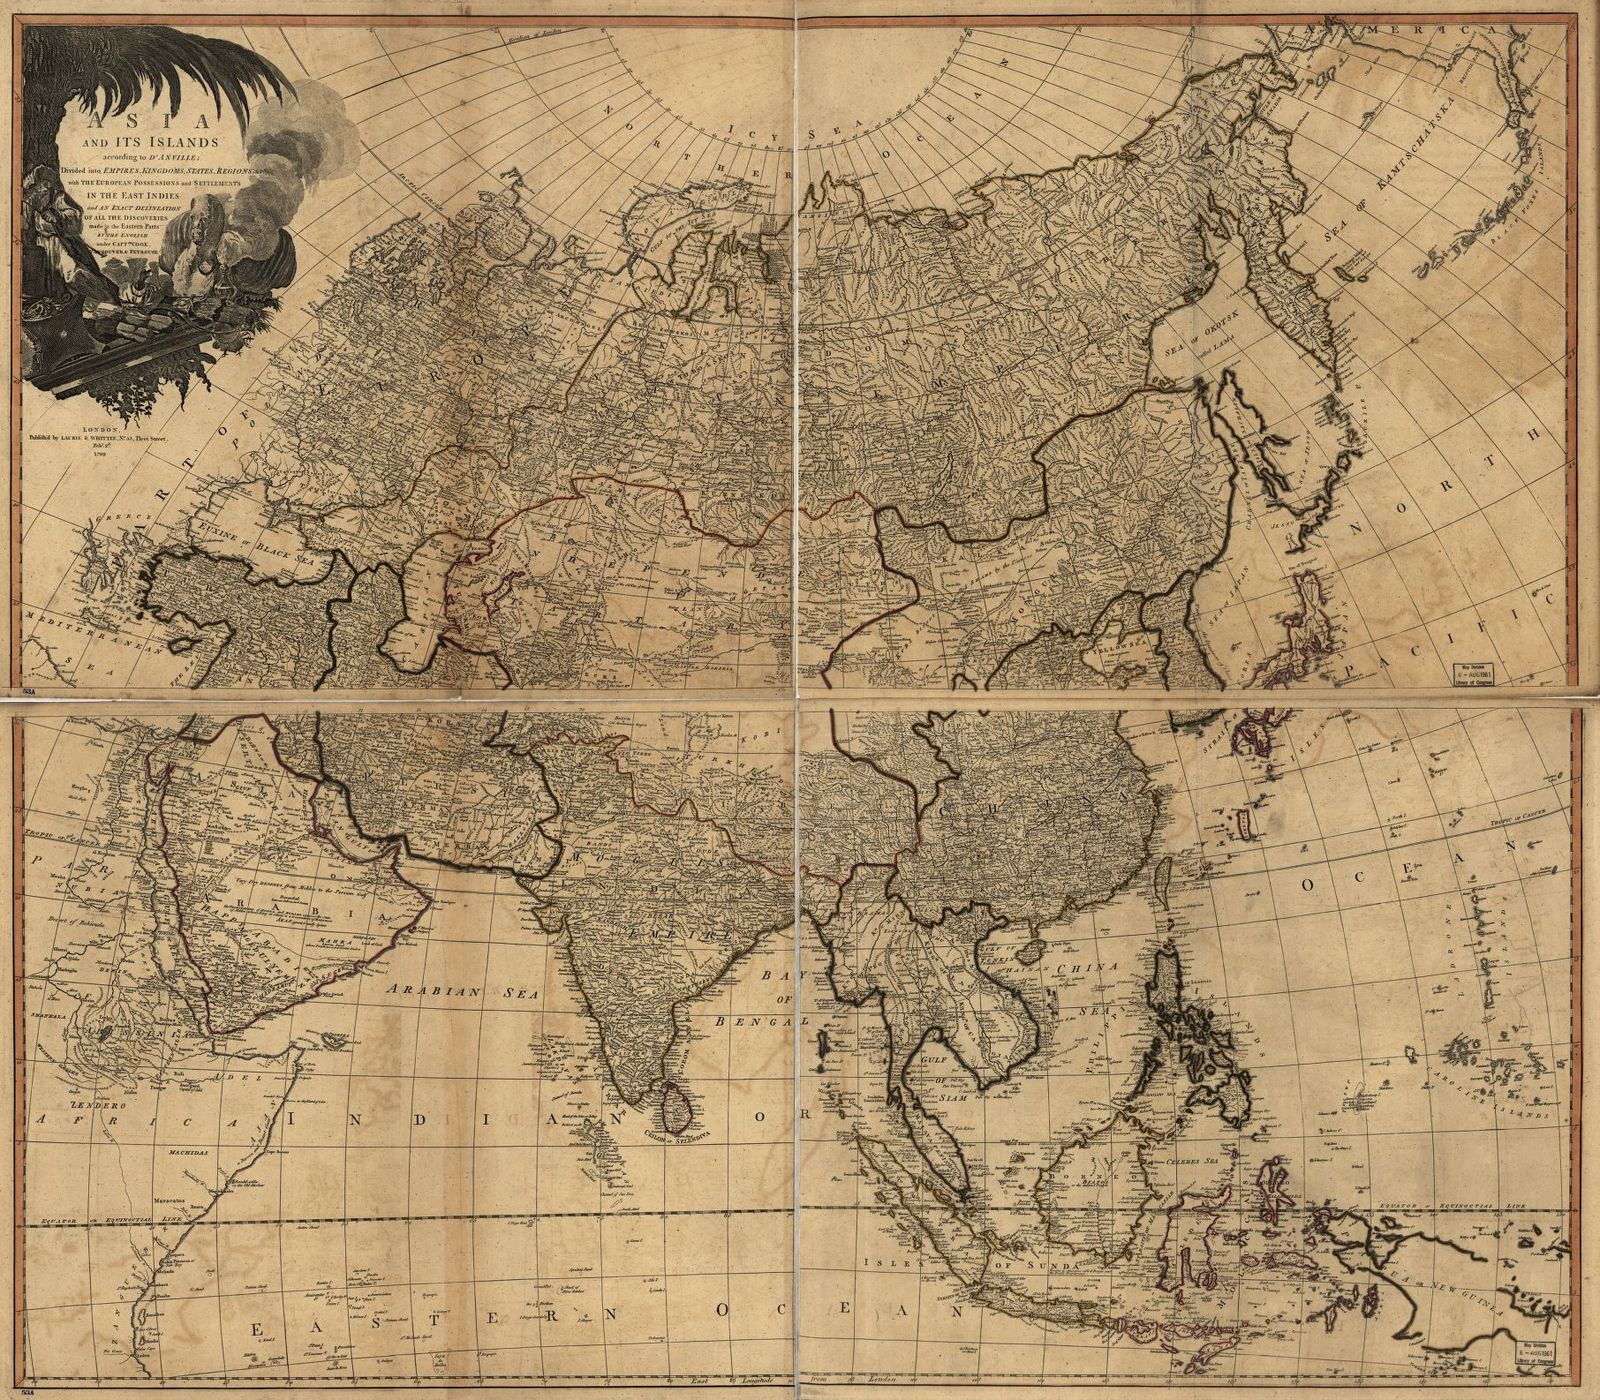 Asia and its islands according to D'Anville.